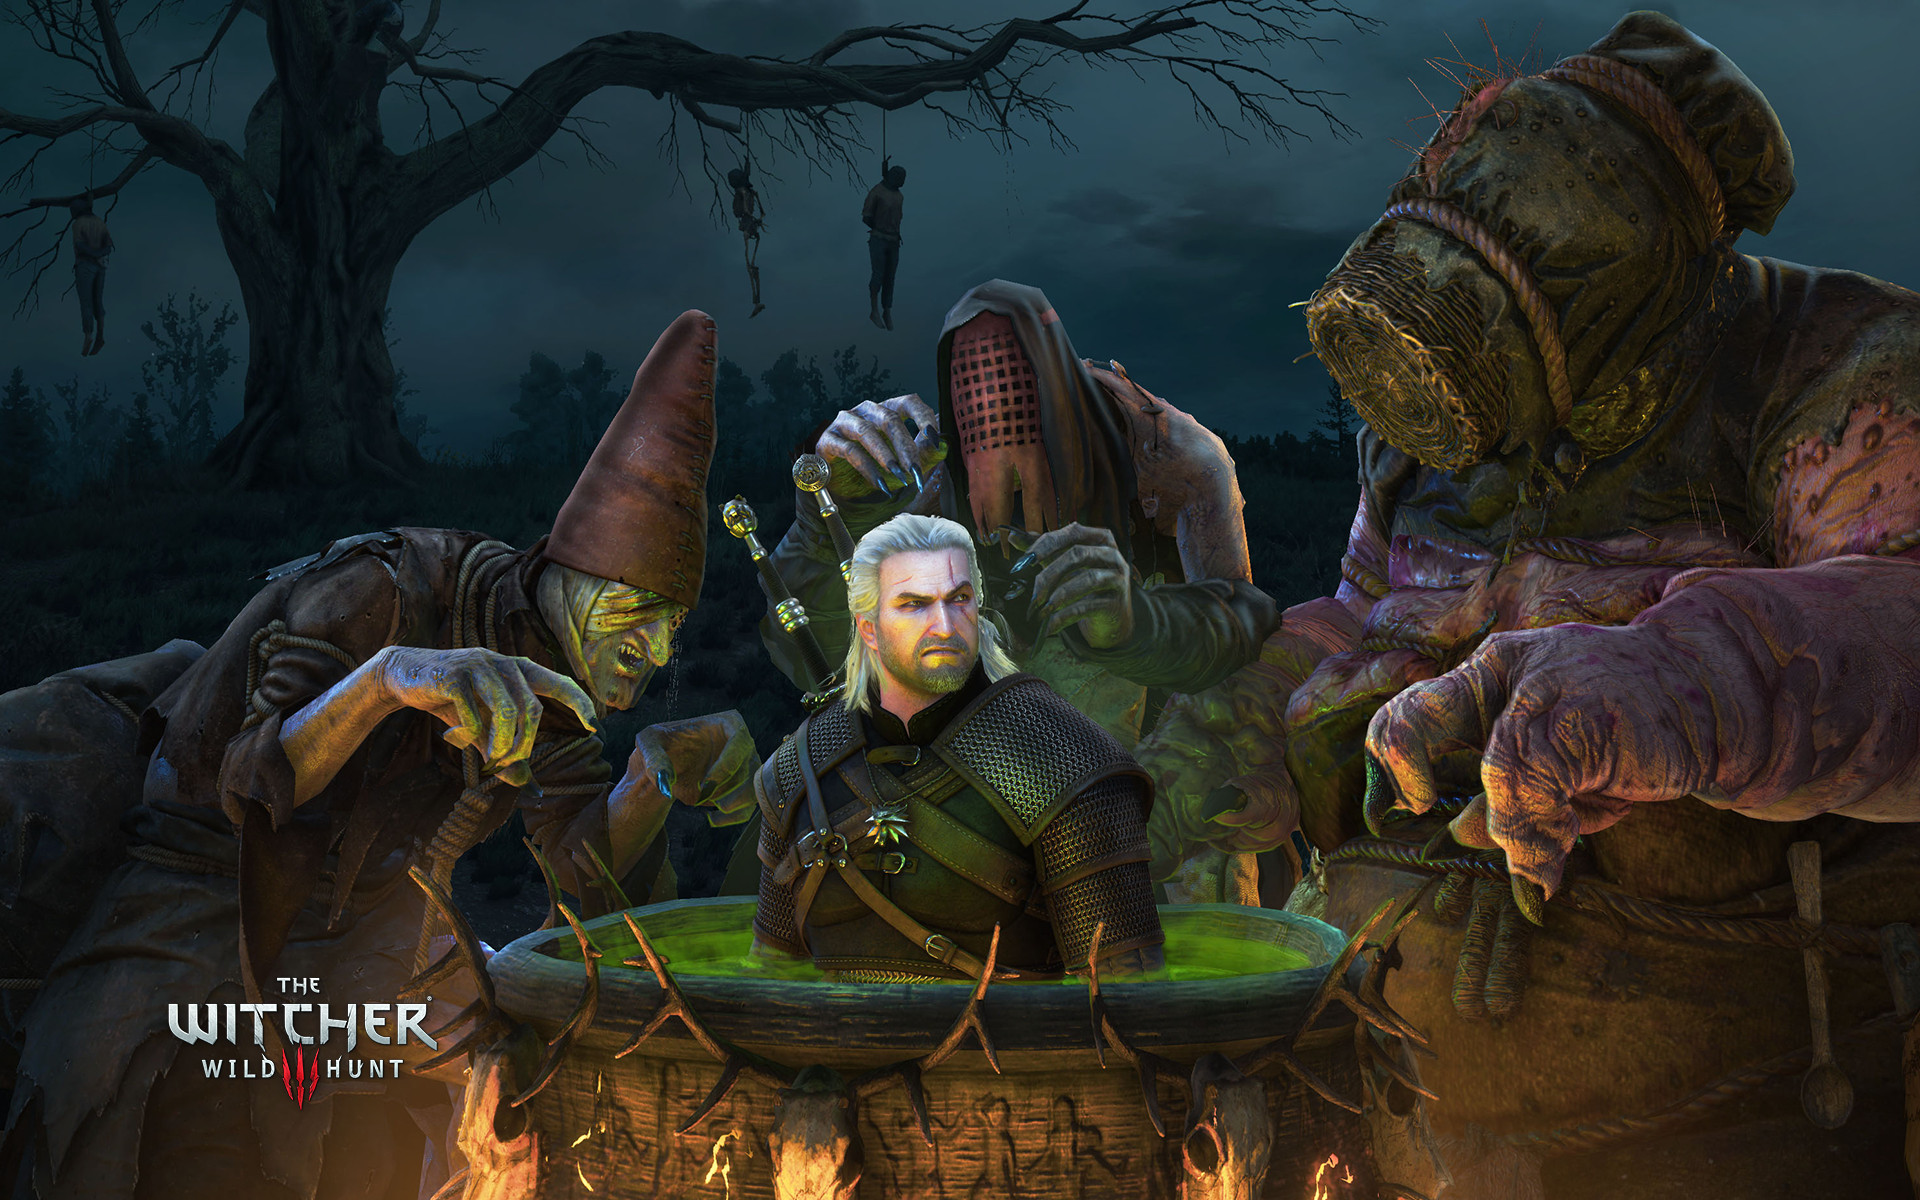 Kochtopf Größen The-witcher.de - Die Community Zu The Witcher 3: Wild Hunt